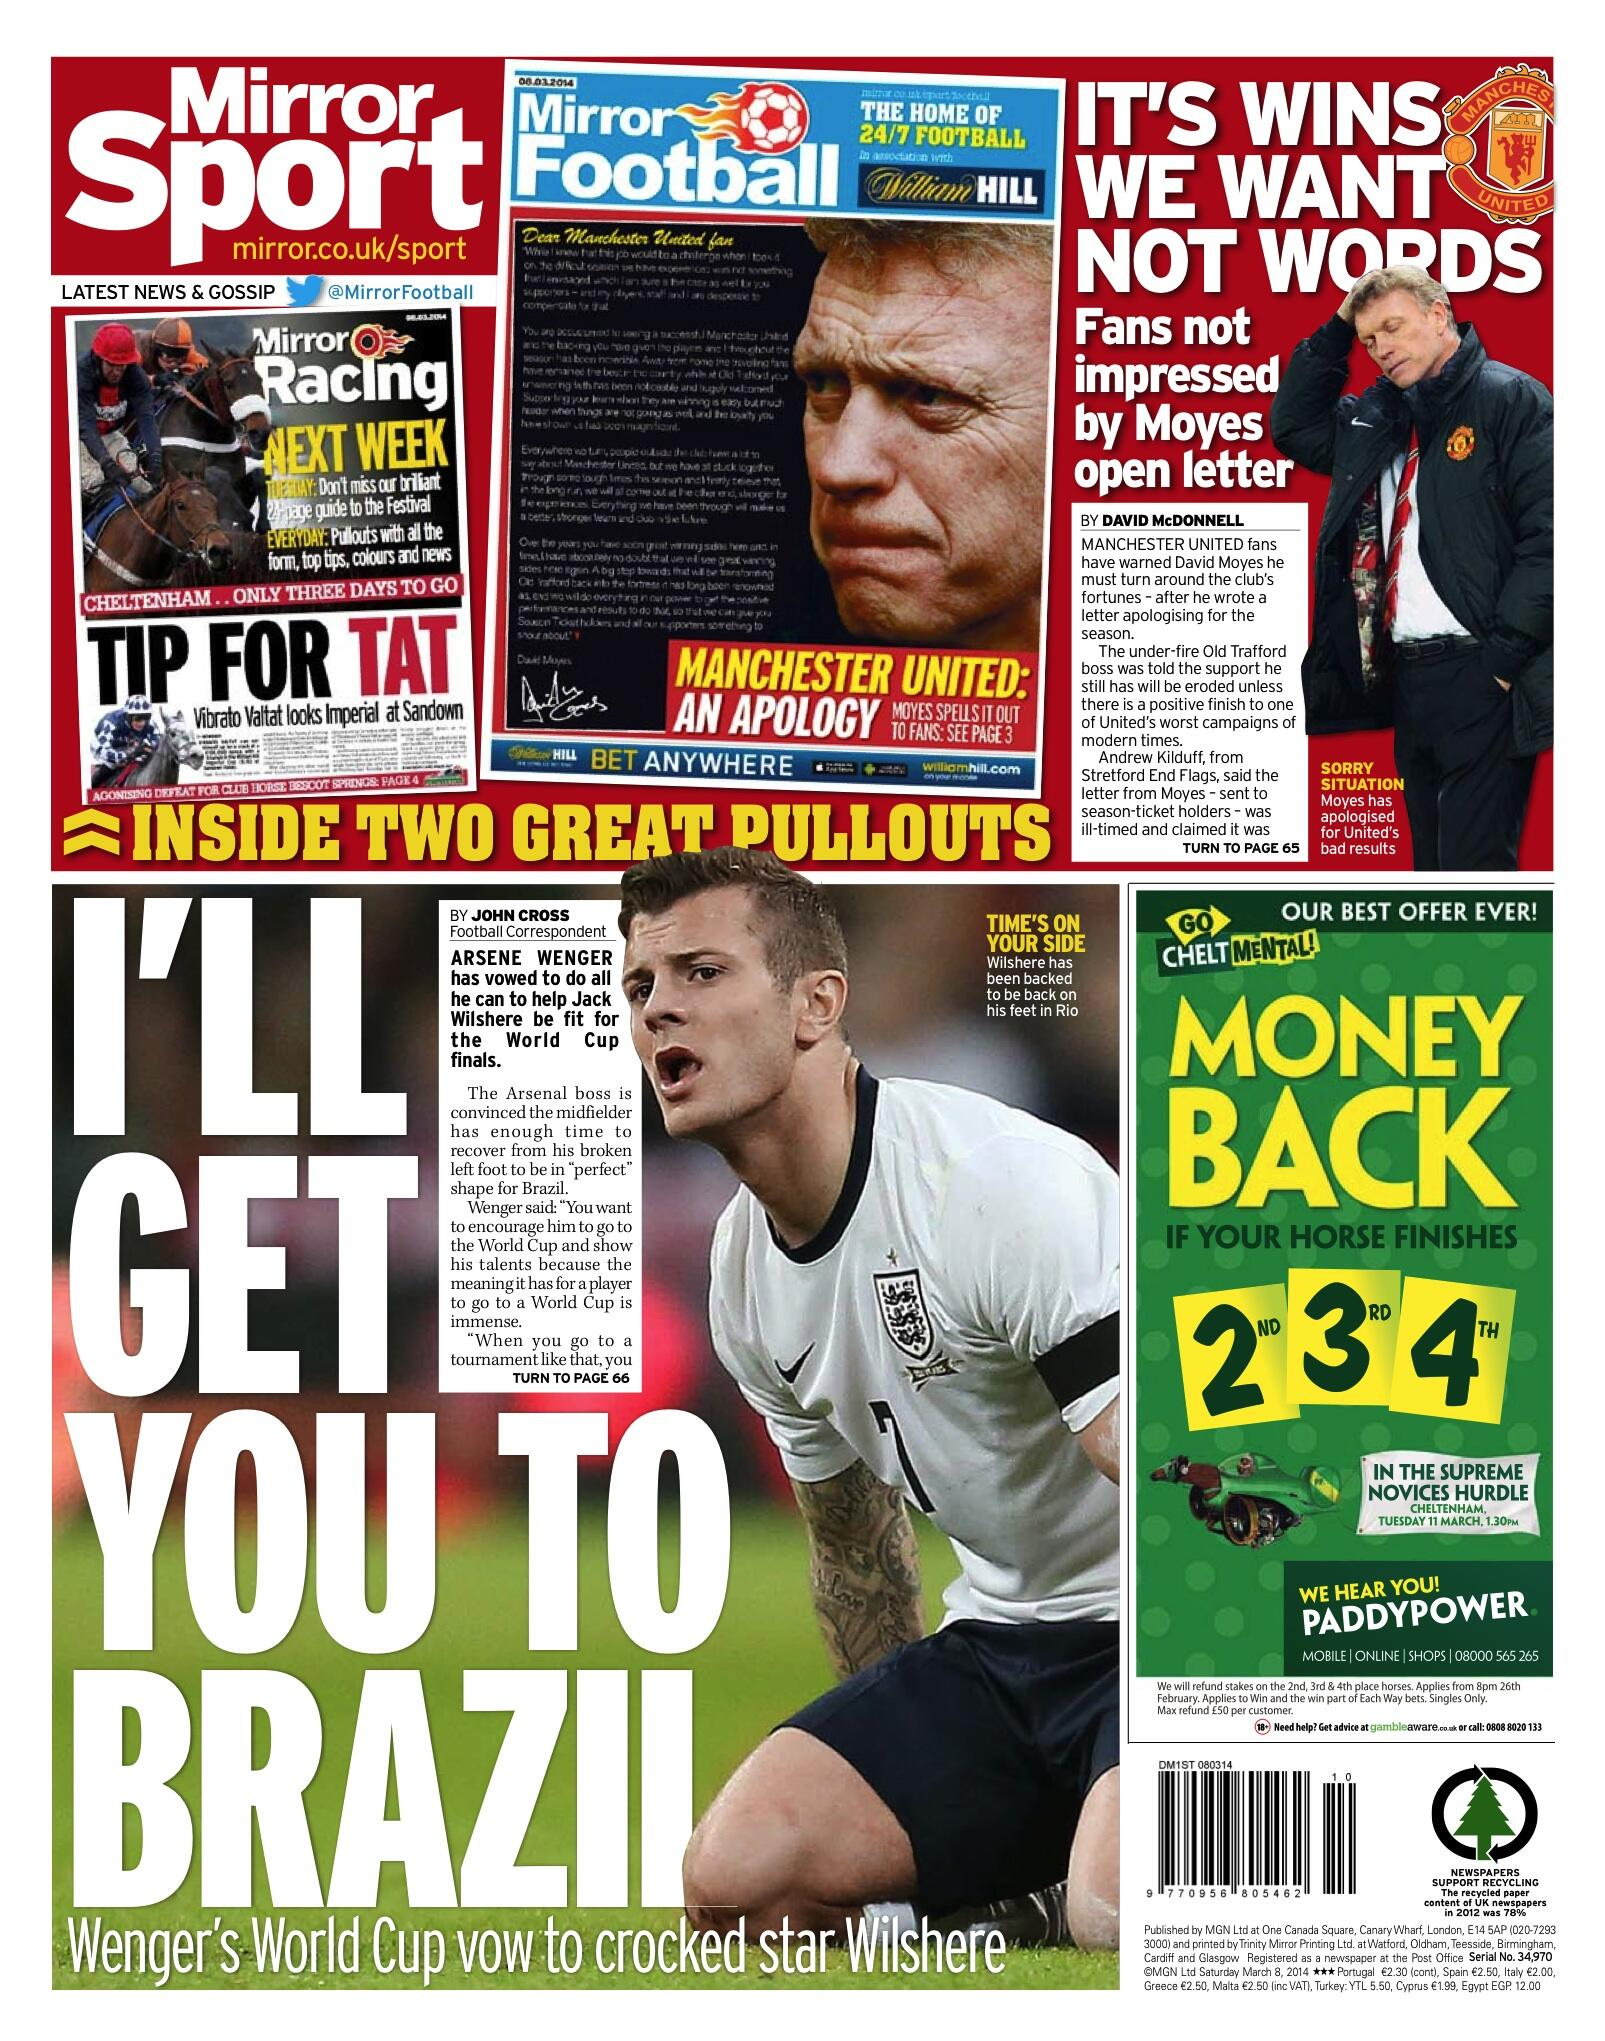 RT @DailyMirror: Saturday's @MirrorSport back page: Wenger's vow to Wilshere: 'I'll get you to Brazil' http://t.co/msjI13Ykw8 http://t.co/6…